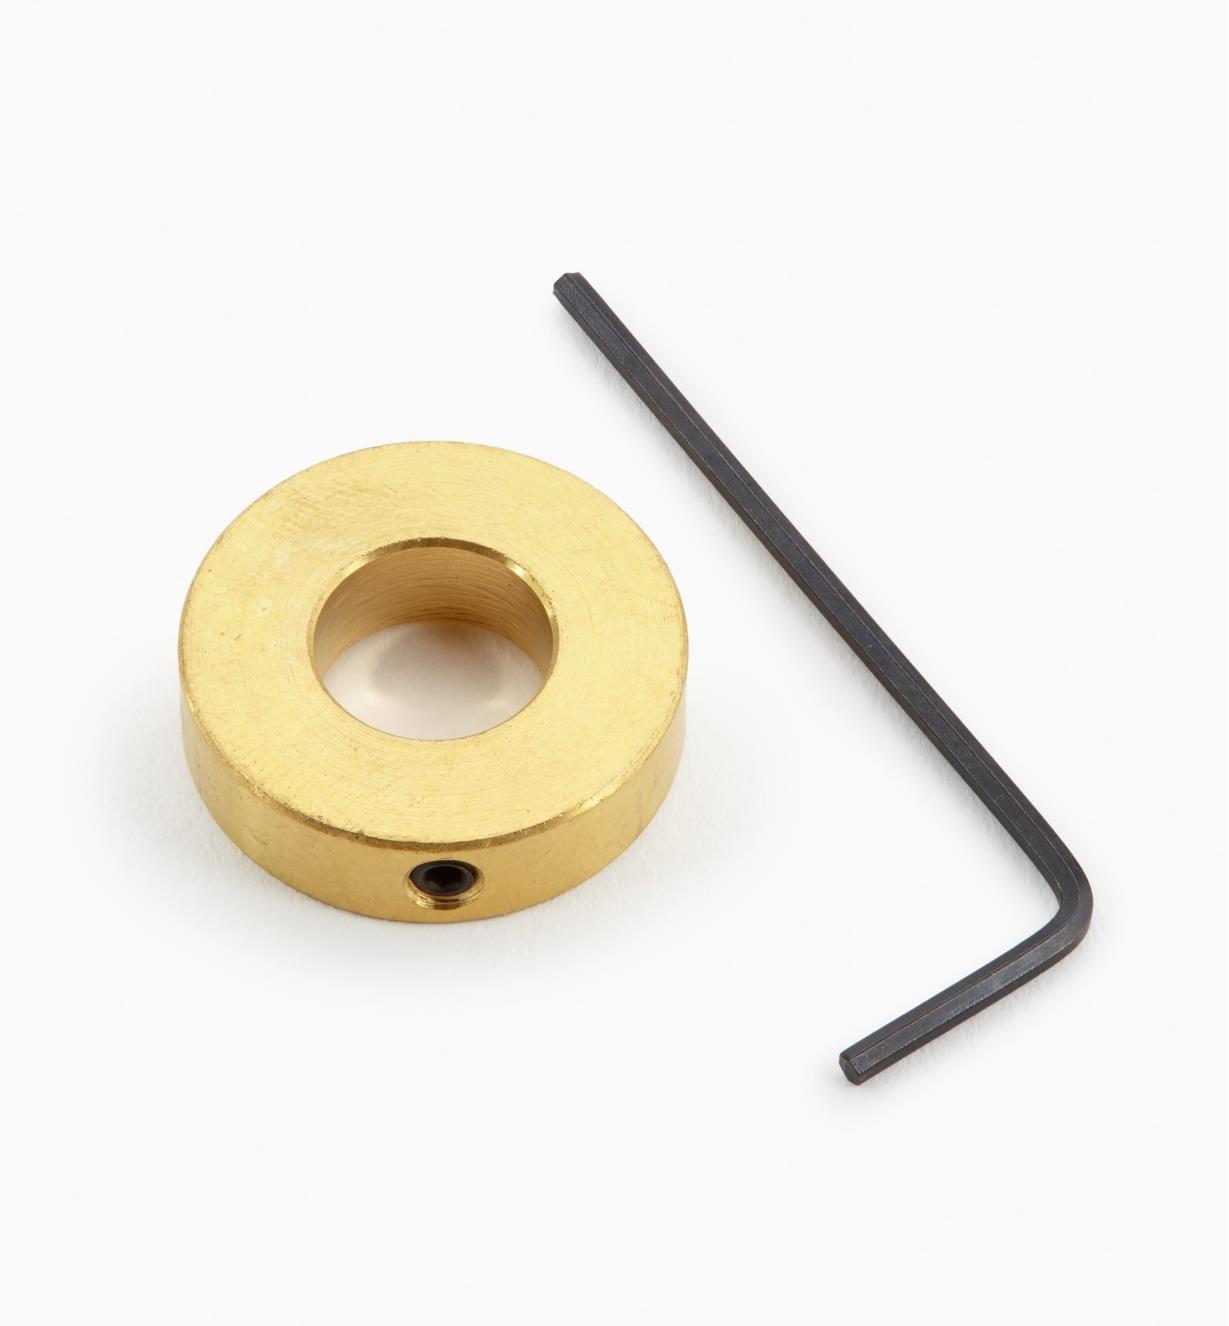 04J2801 - Inlay Bushing & Key